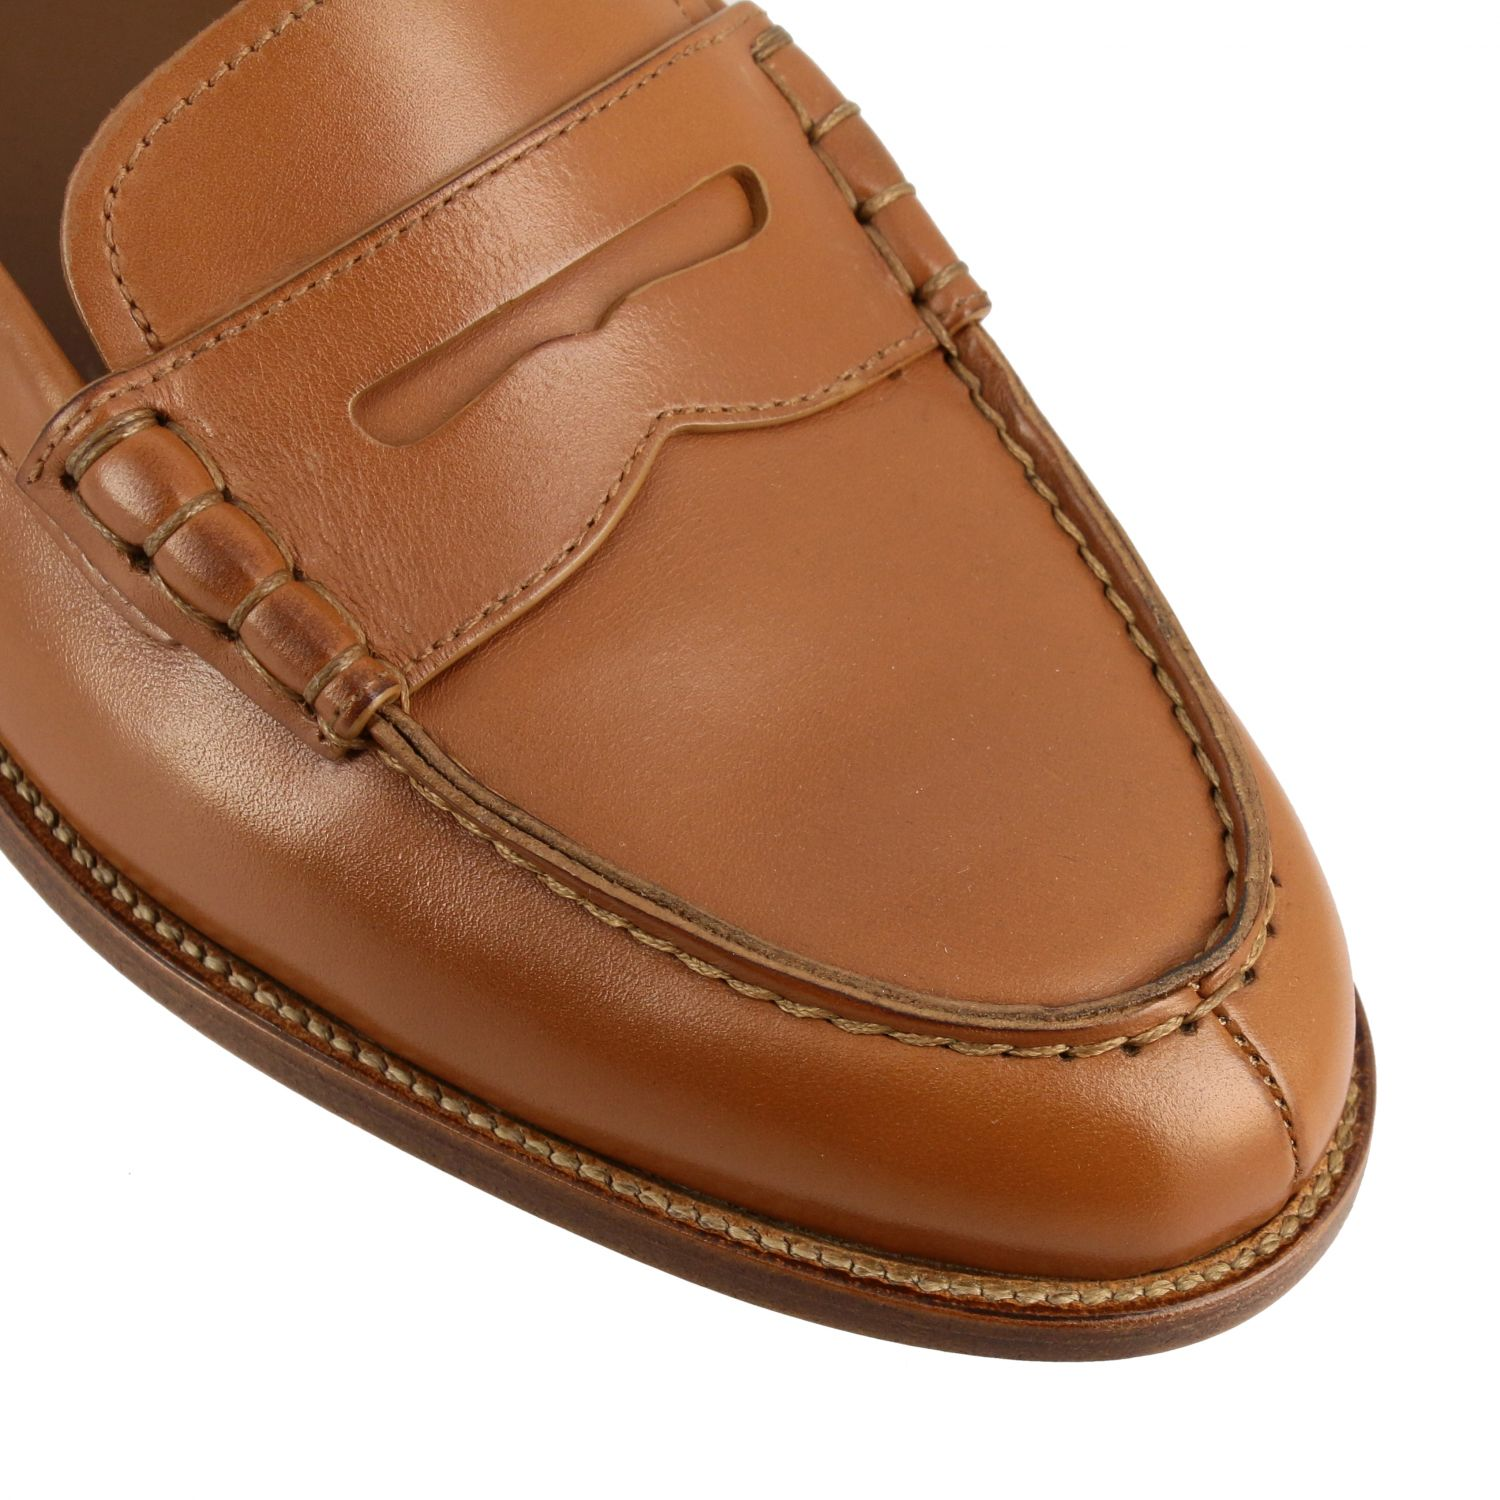 Loafers Church's: Shoes women Church's leather 4